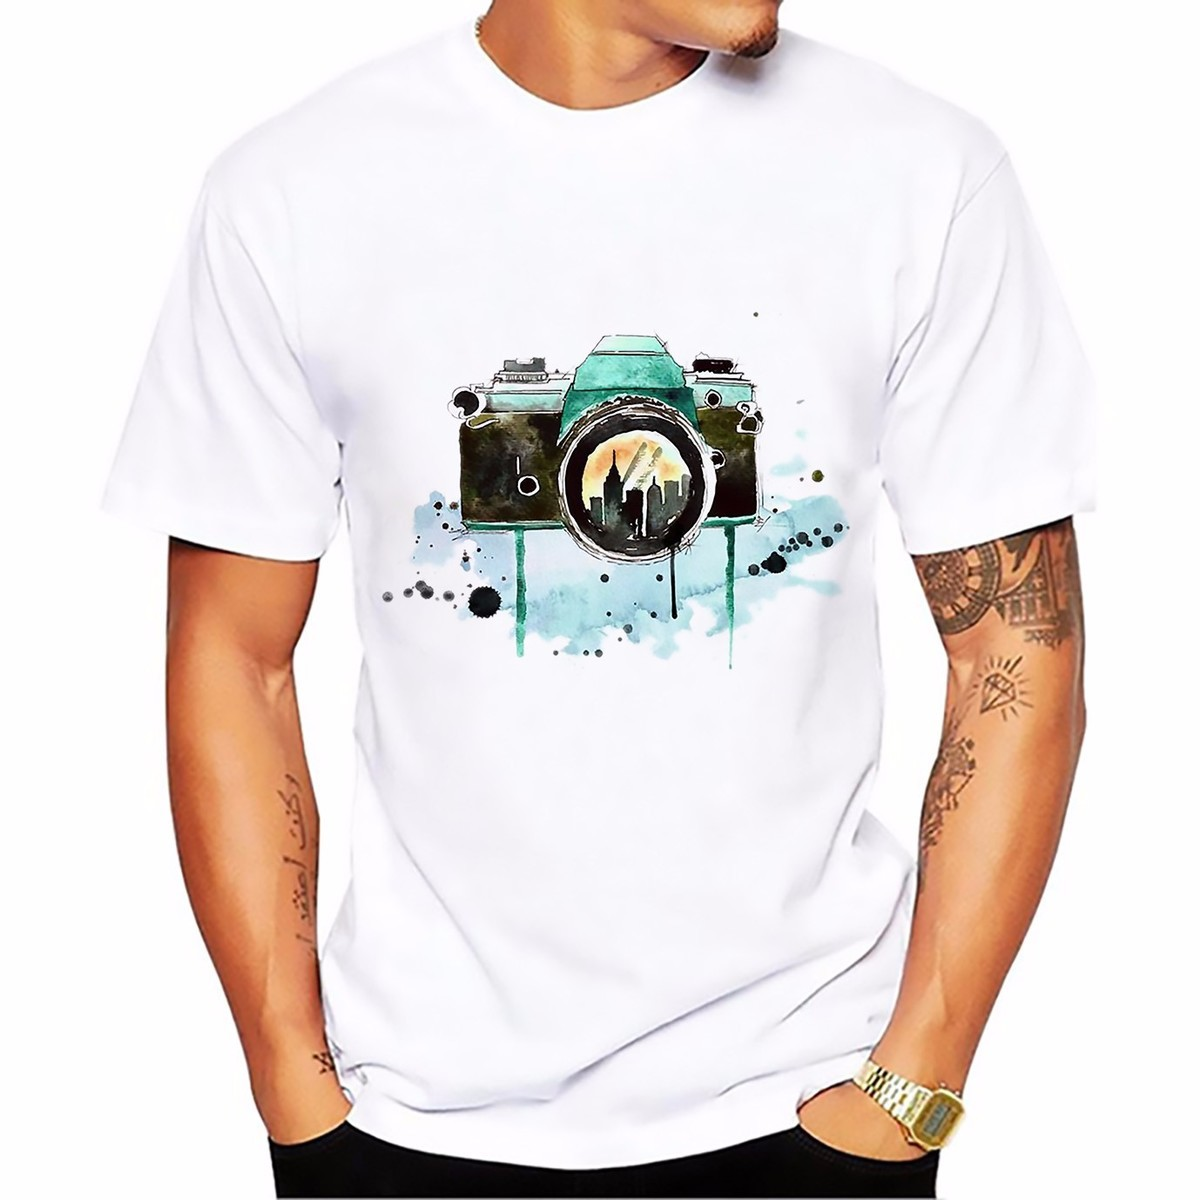 Fresh Style Camera Design T Shirt Man Summer Tops Tees  Short Sleeve O-neck Comfort Breathable T-shirt White Casual Tshirt